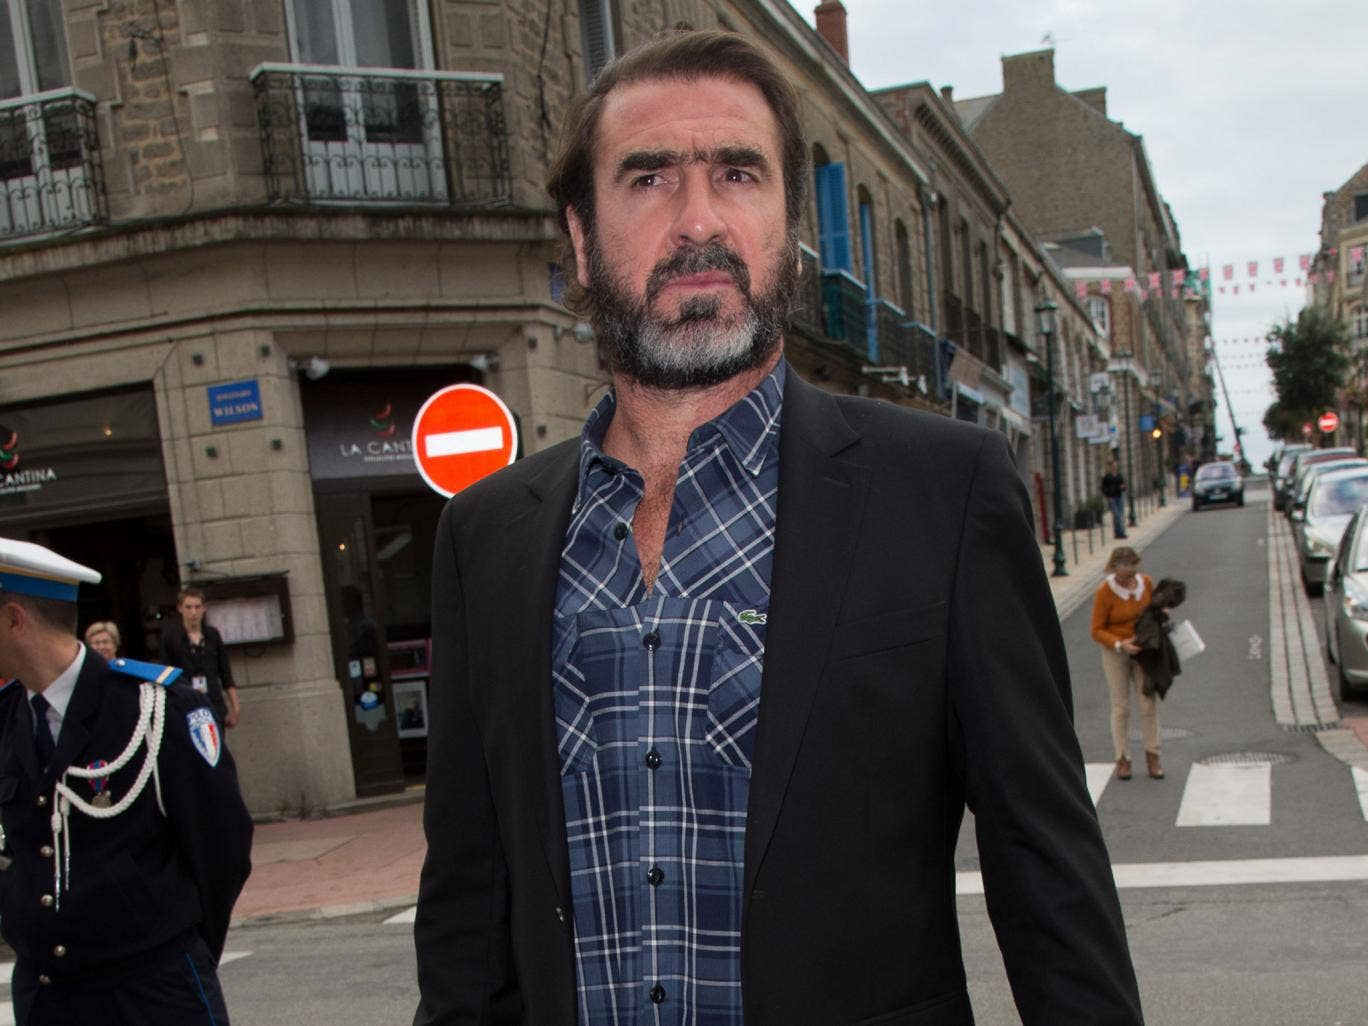 Eric Cantona was involved in an incident in north London Wednesday